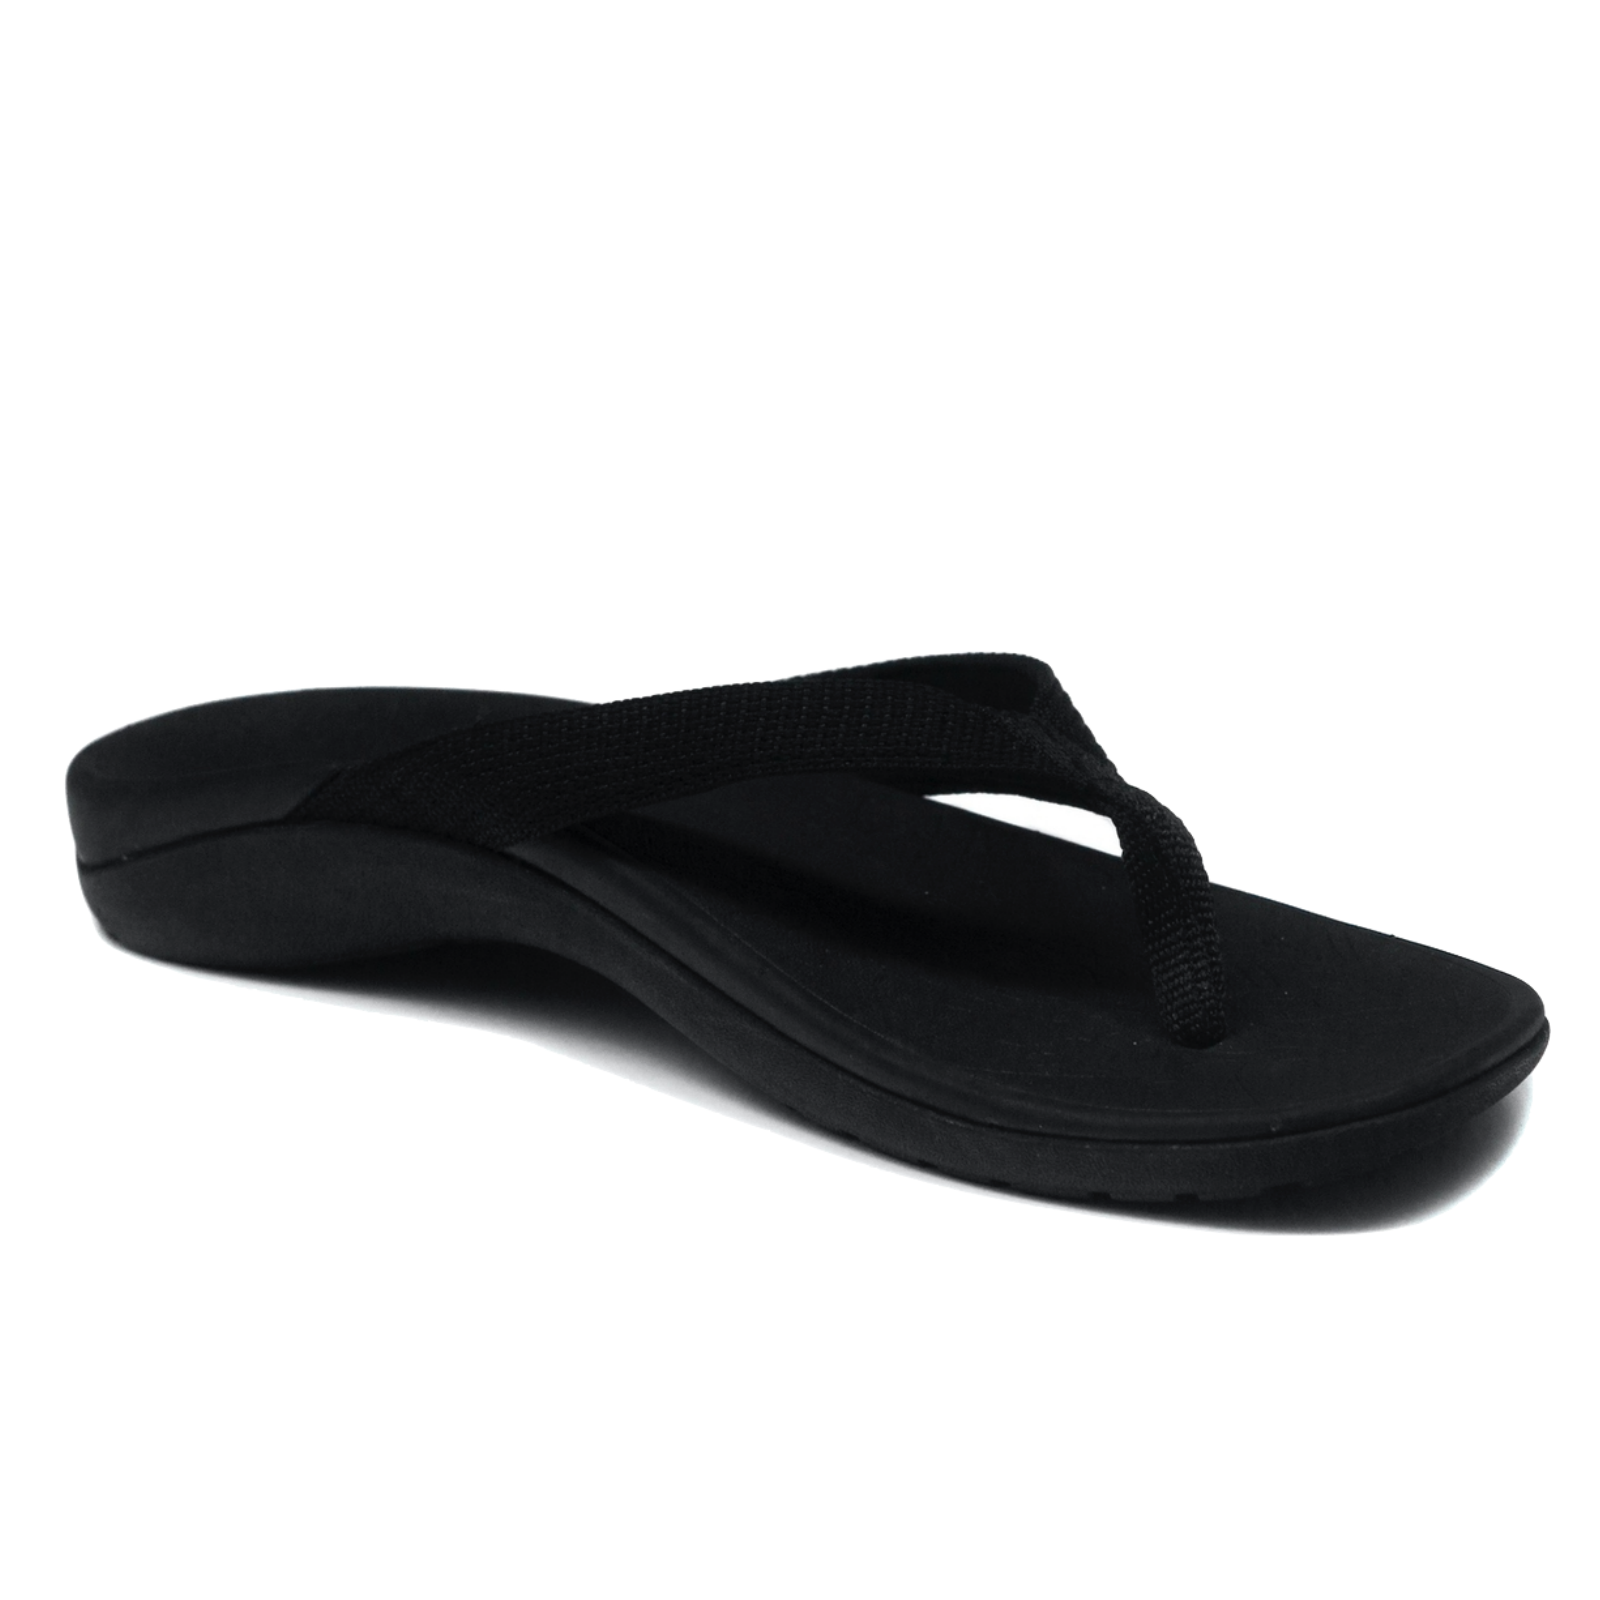 d7c8df685502 ... Women s Shoes · Shoe Accessories ·   Back to Men s Thongs   Sandals. h  m s Remaining. AXIGN Basic Orthotic Arch Support ...